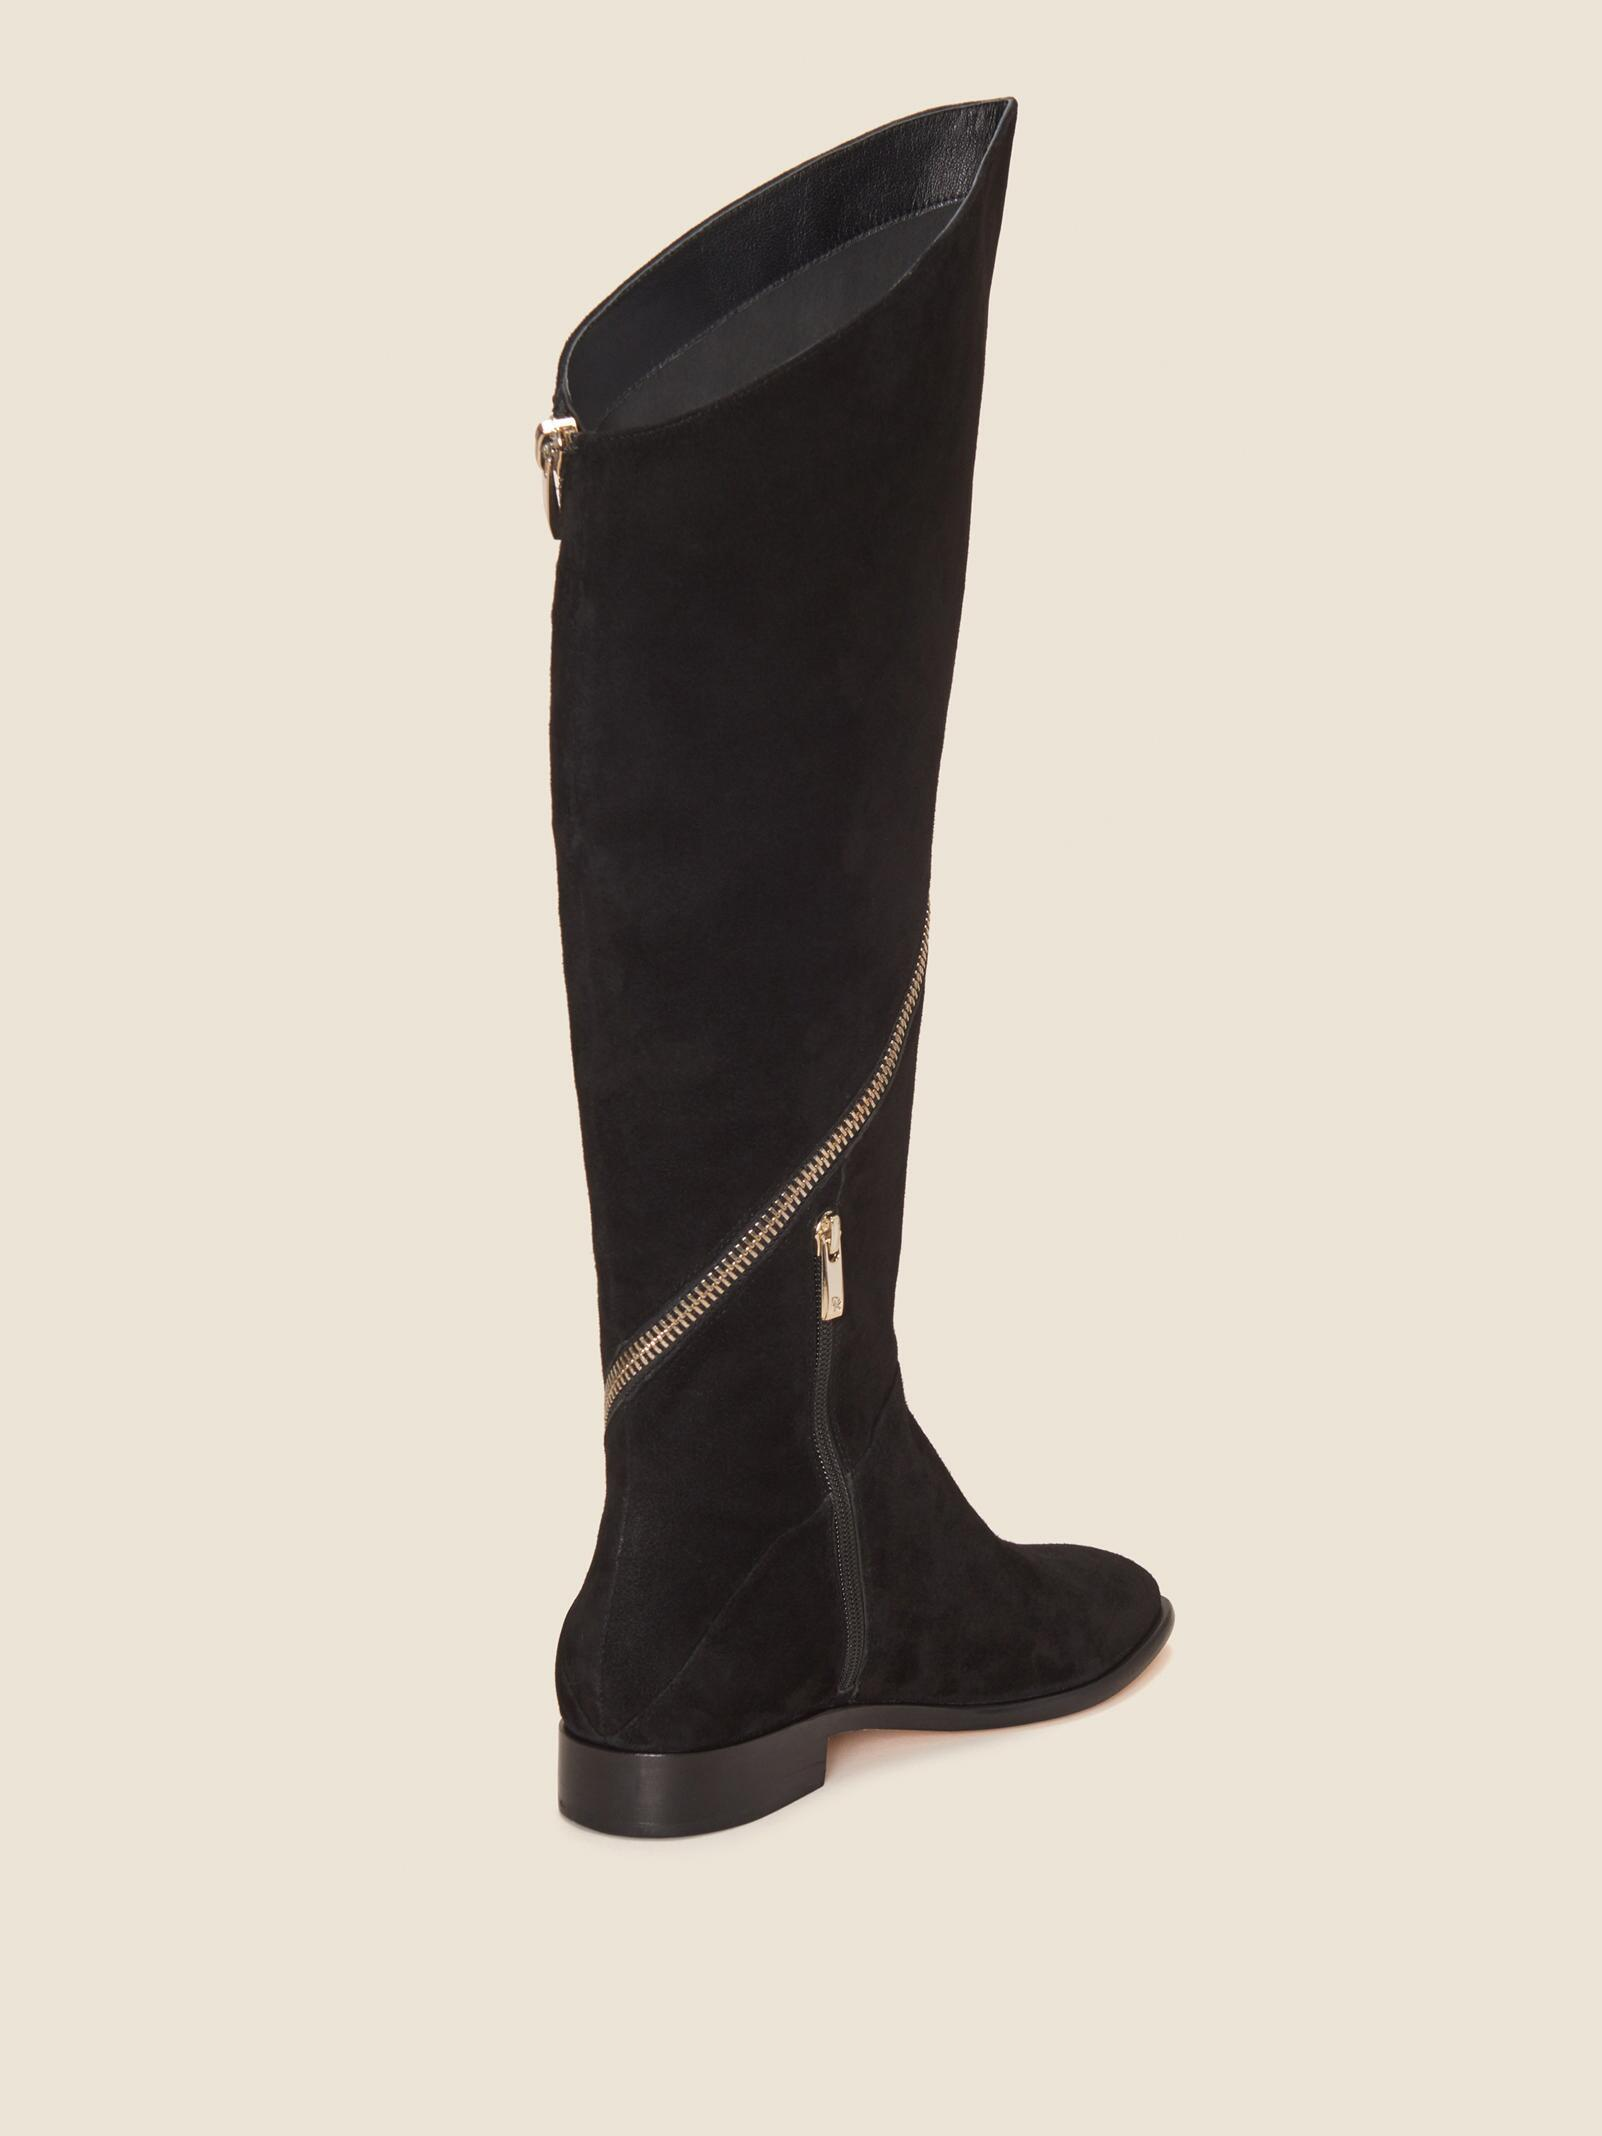 e1fd45bb9c3c Lyst - DKNY Lara Knee High Boot in Black